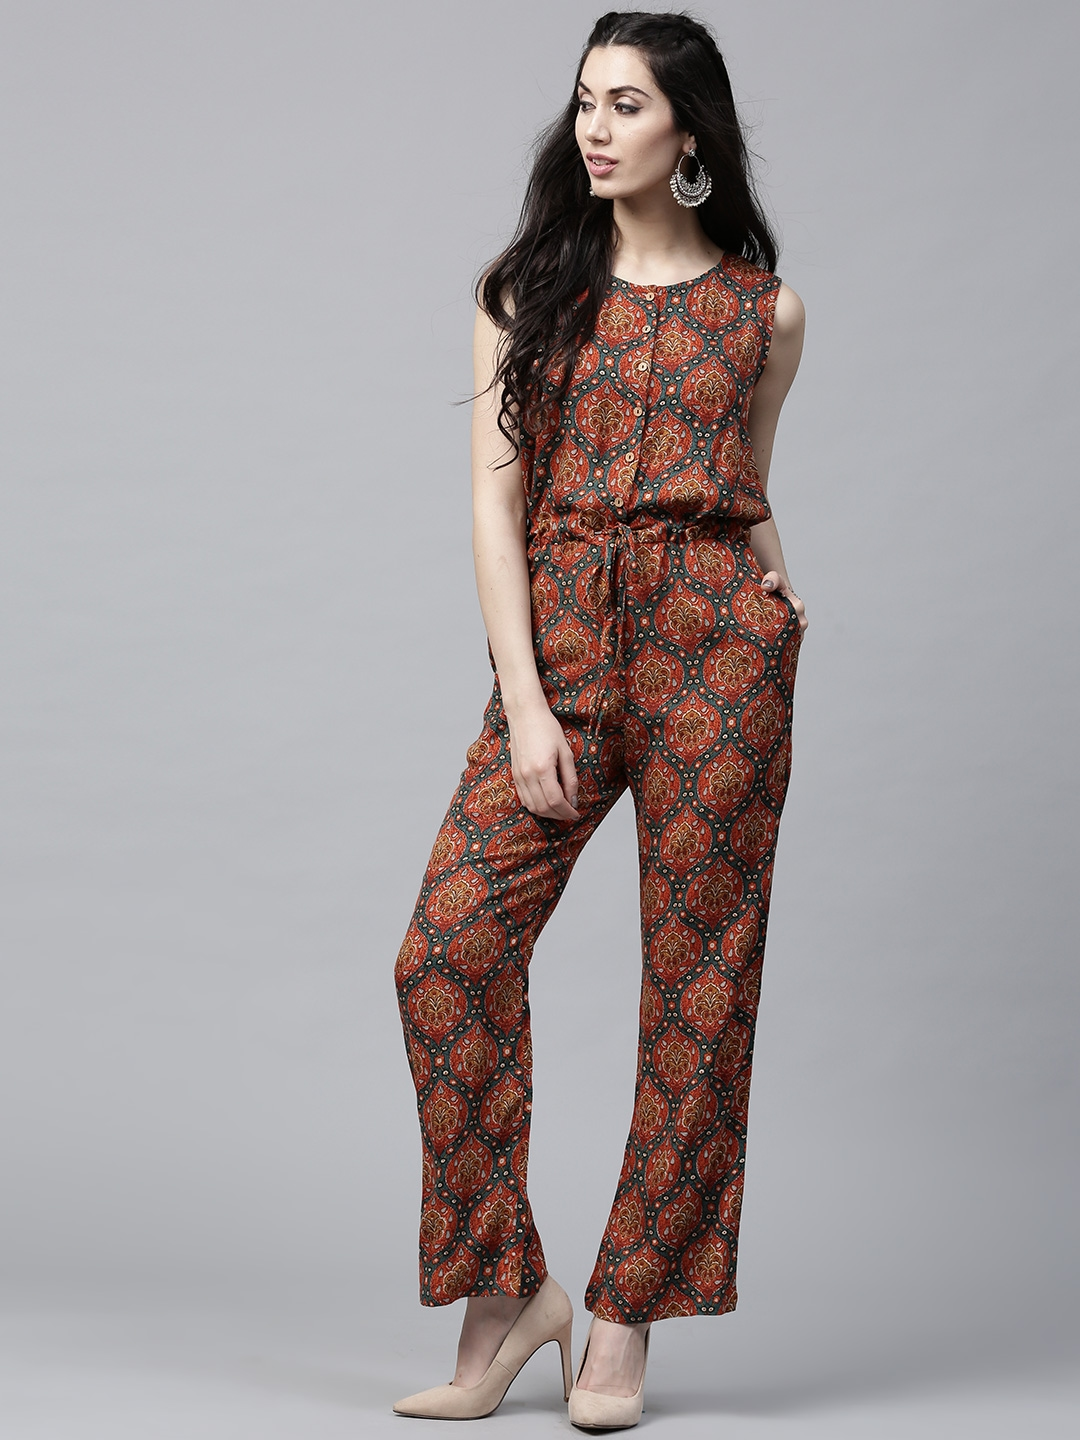 ccb7b8911276 Buy AKS Rust Orange   Teal Green Printed Jumpsuit - Jumpsuit for Women  2493364